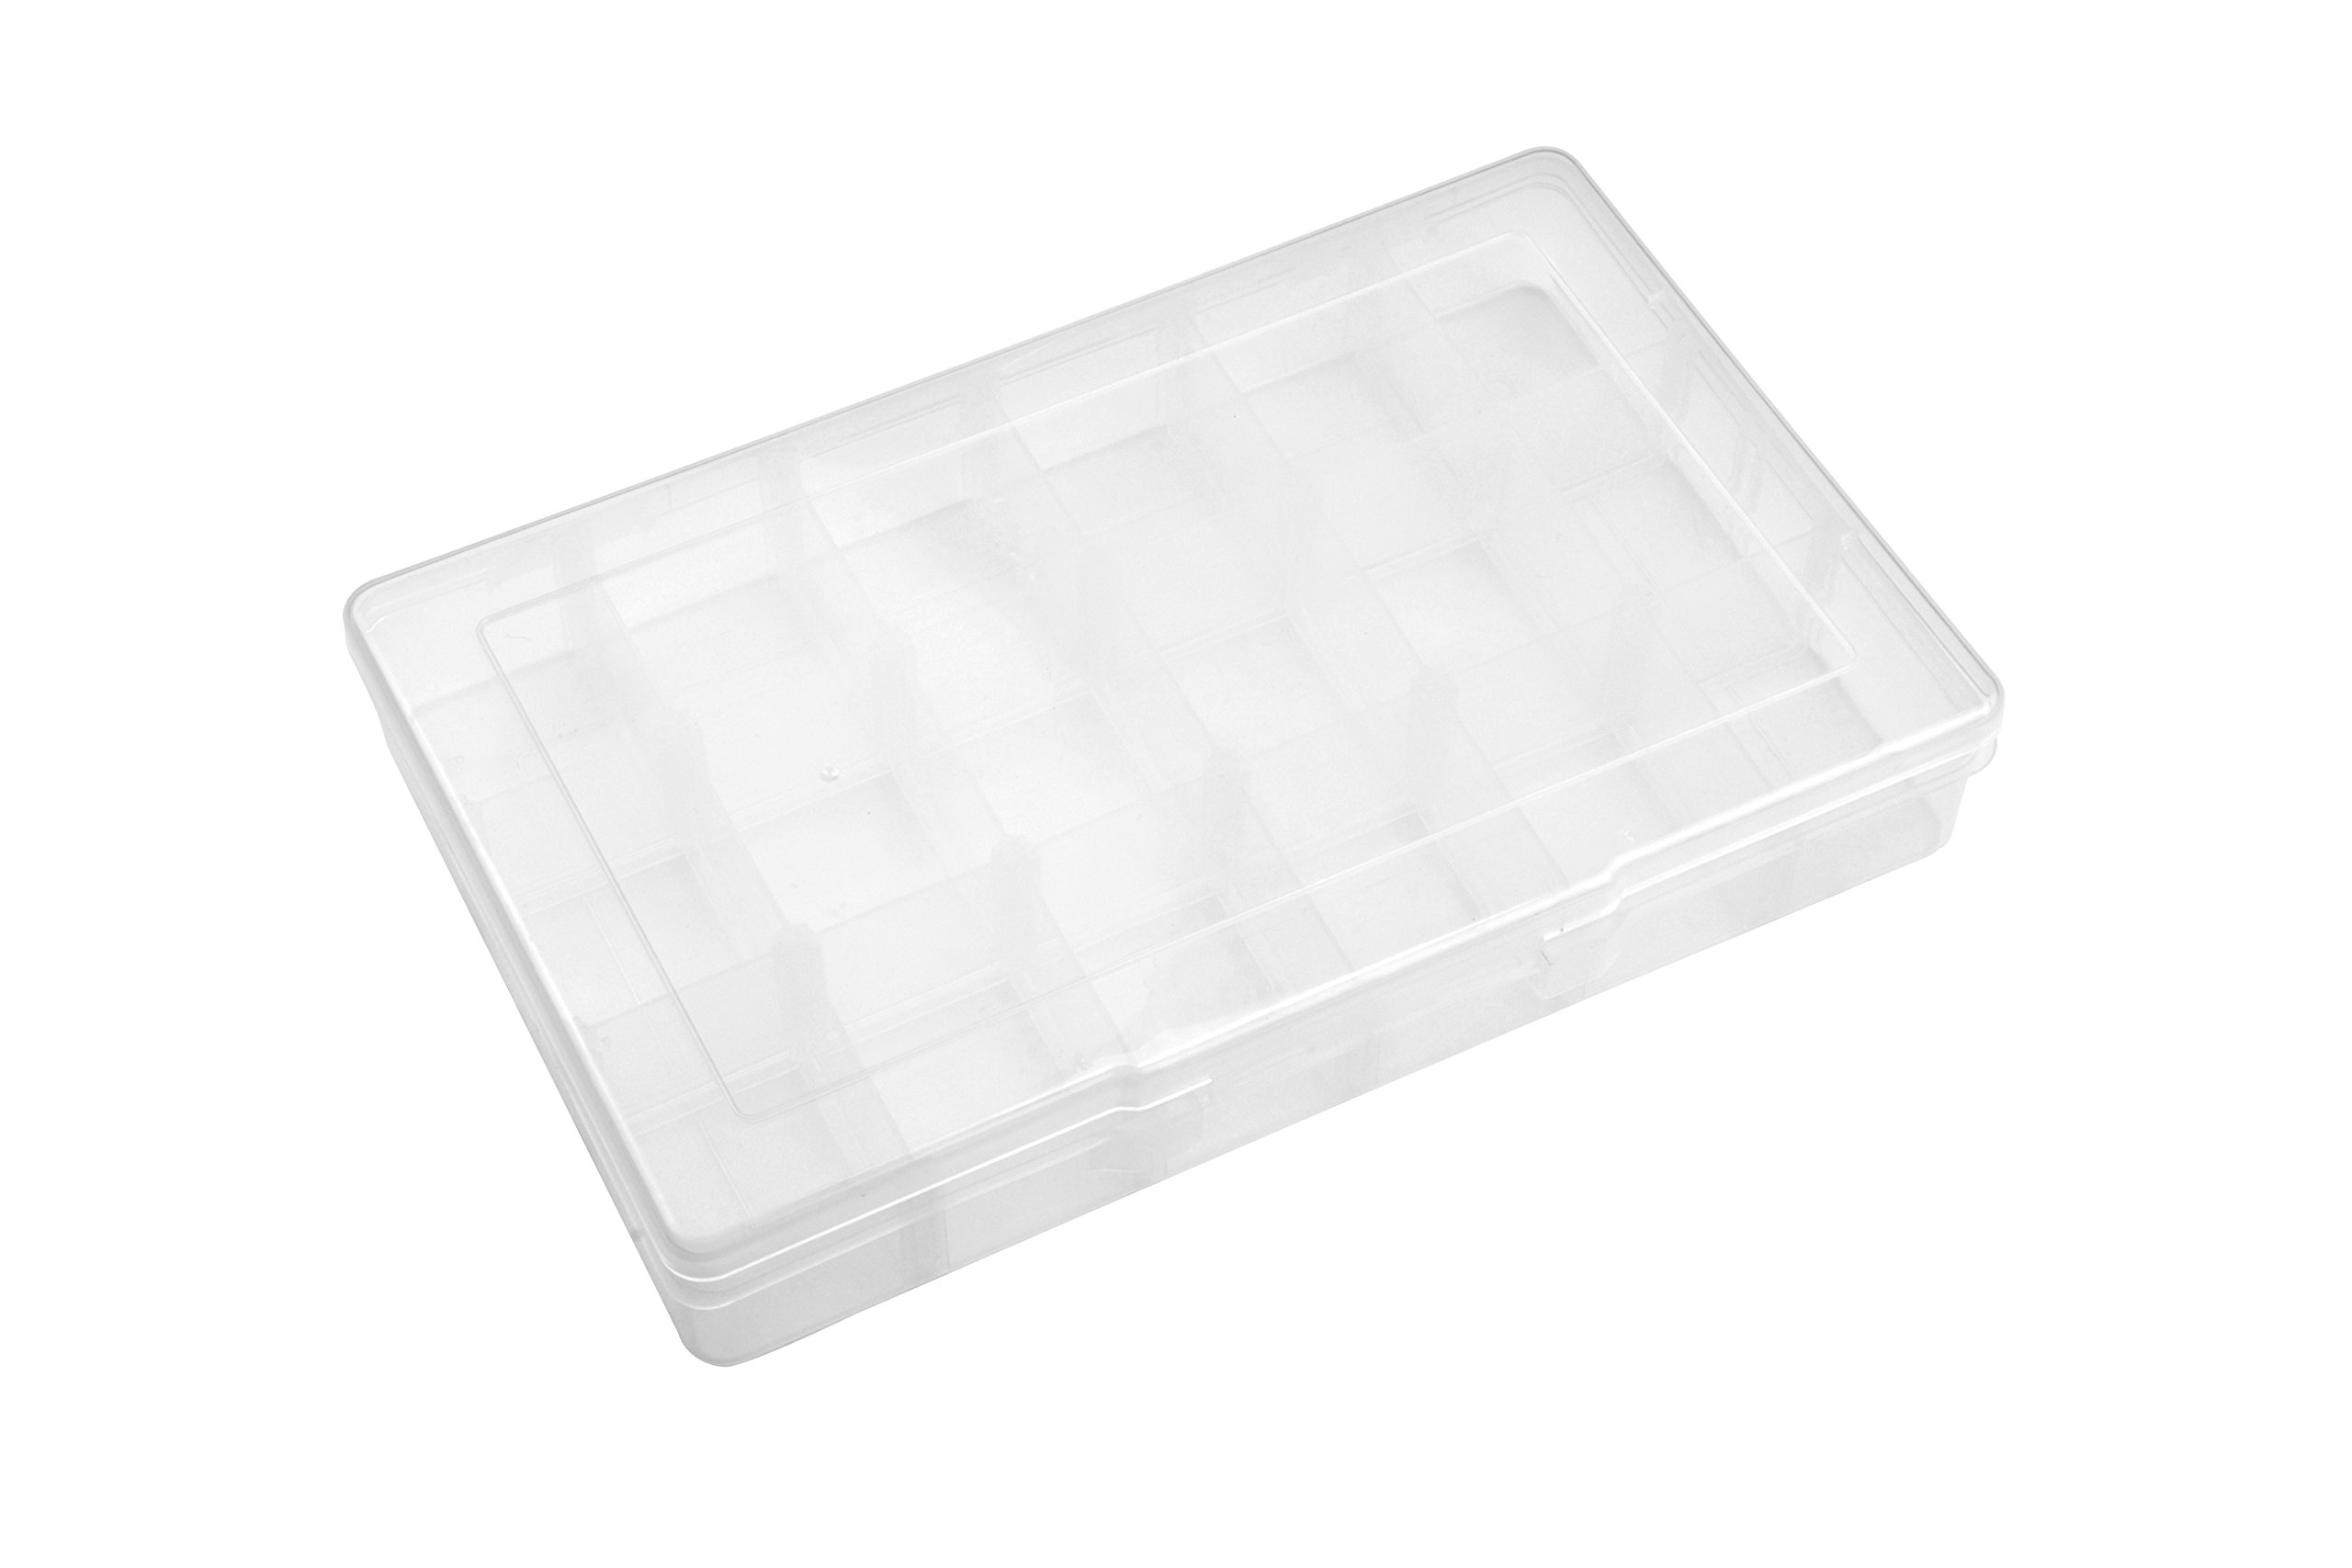 SE 87064DB 18 Adjustable Sections Compartment Plastic Storage Container, 12-1/4'' x 7-3/4'' x 1-3/4'', Large, Translucent